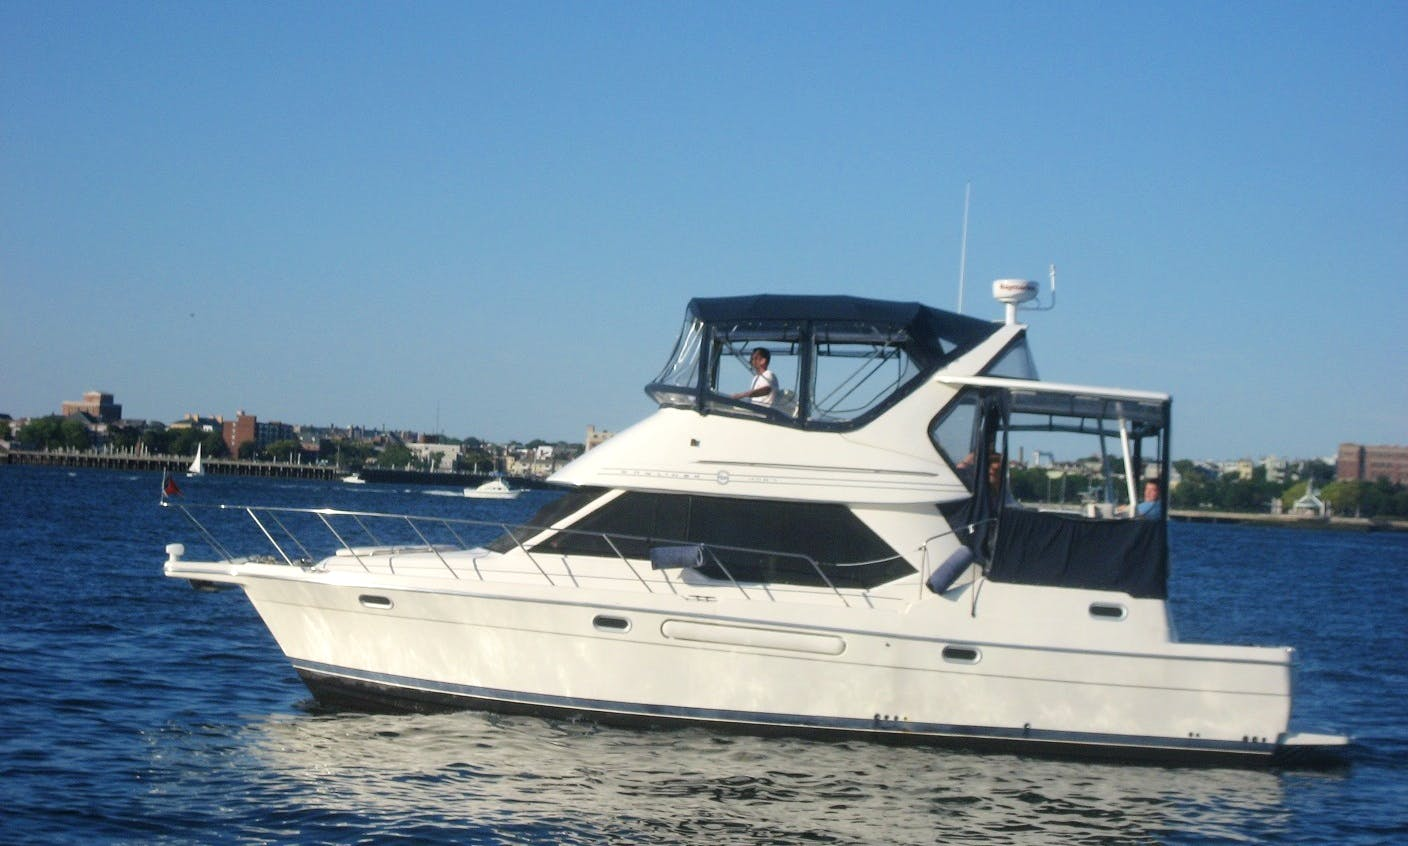 Get Ready for the Best Yacht rental in Boston